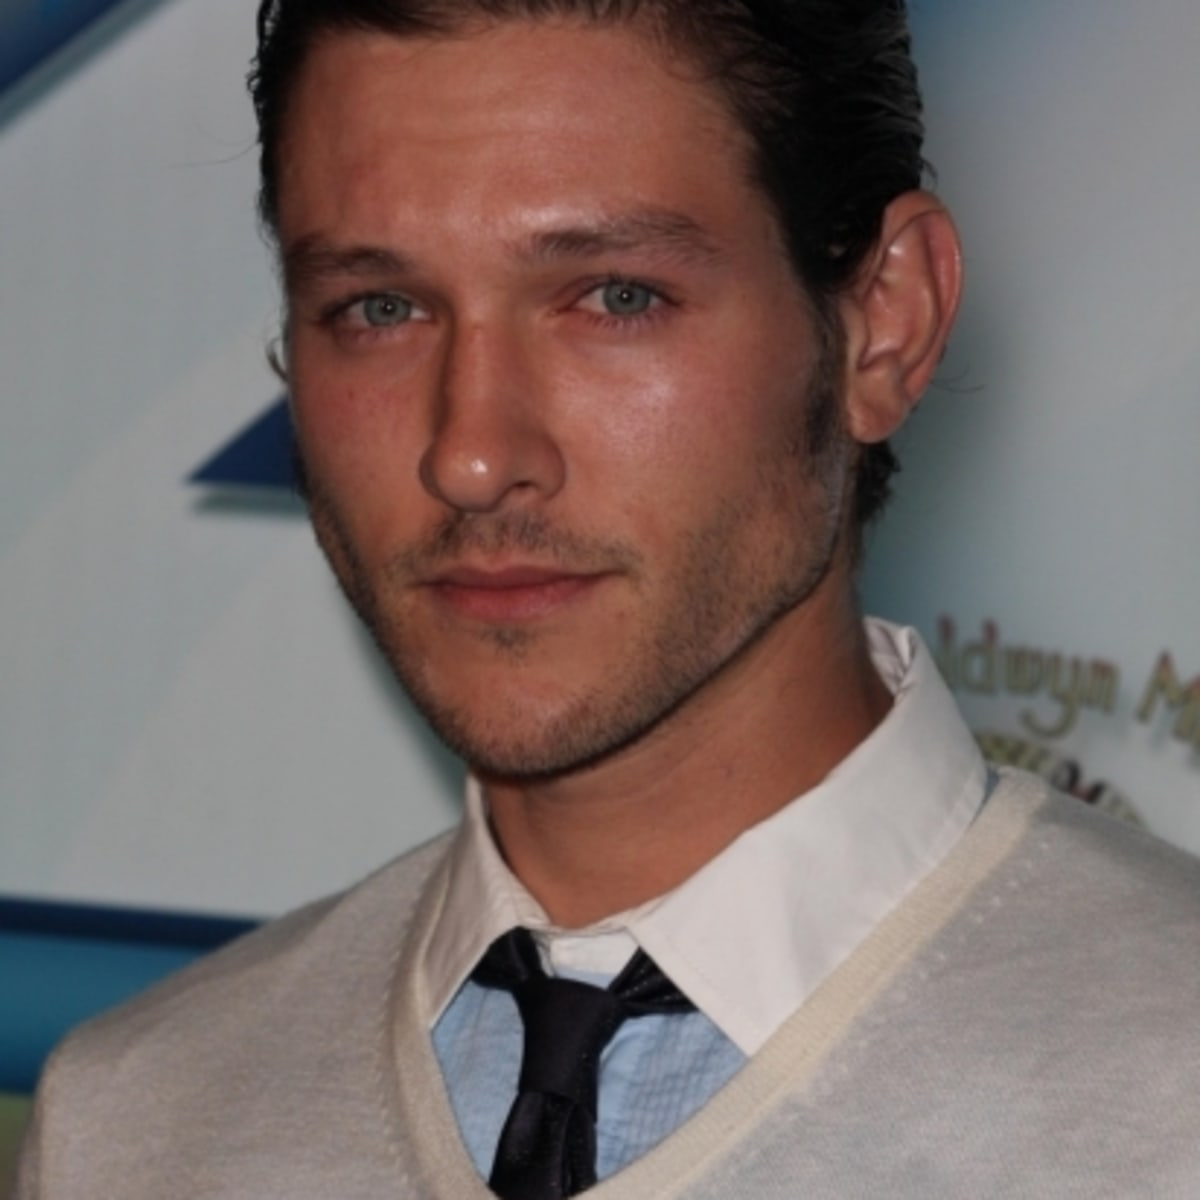 The Young And The Restless Michael Graziadei Heads To Venice Daytime Confidential